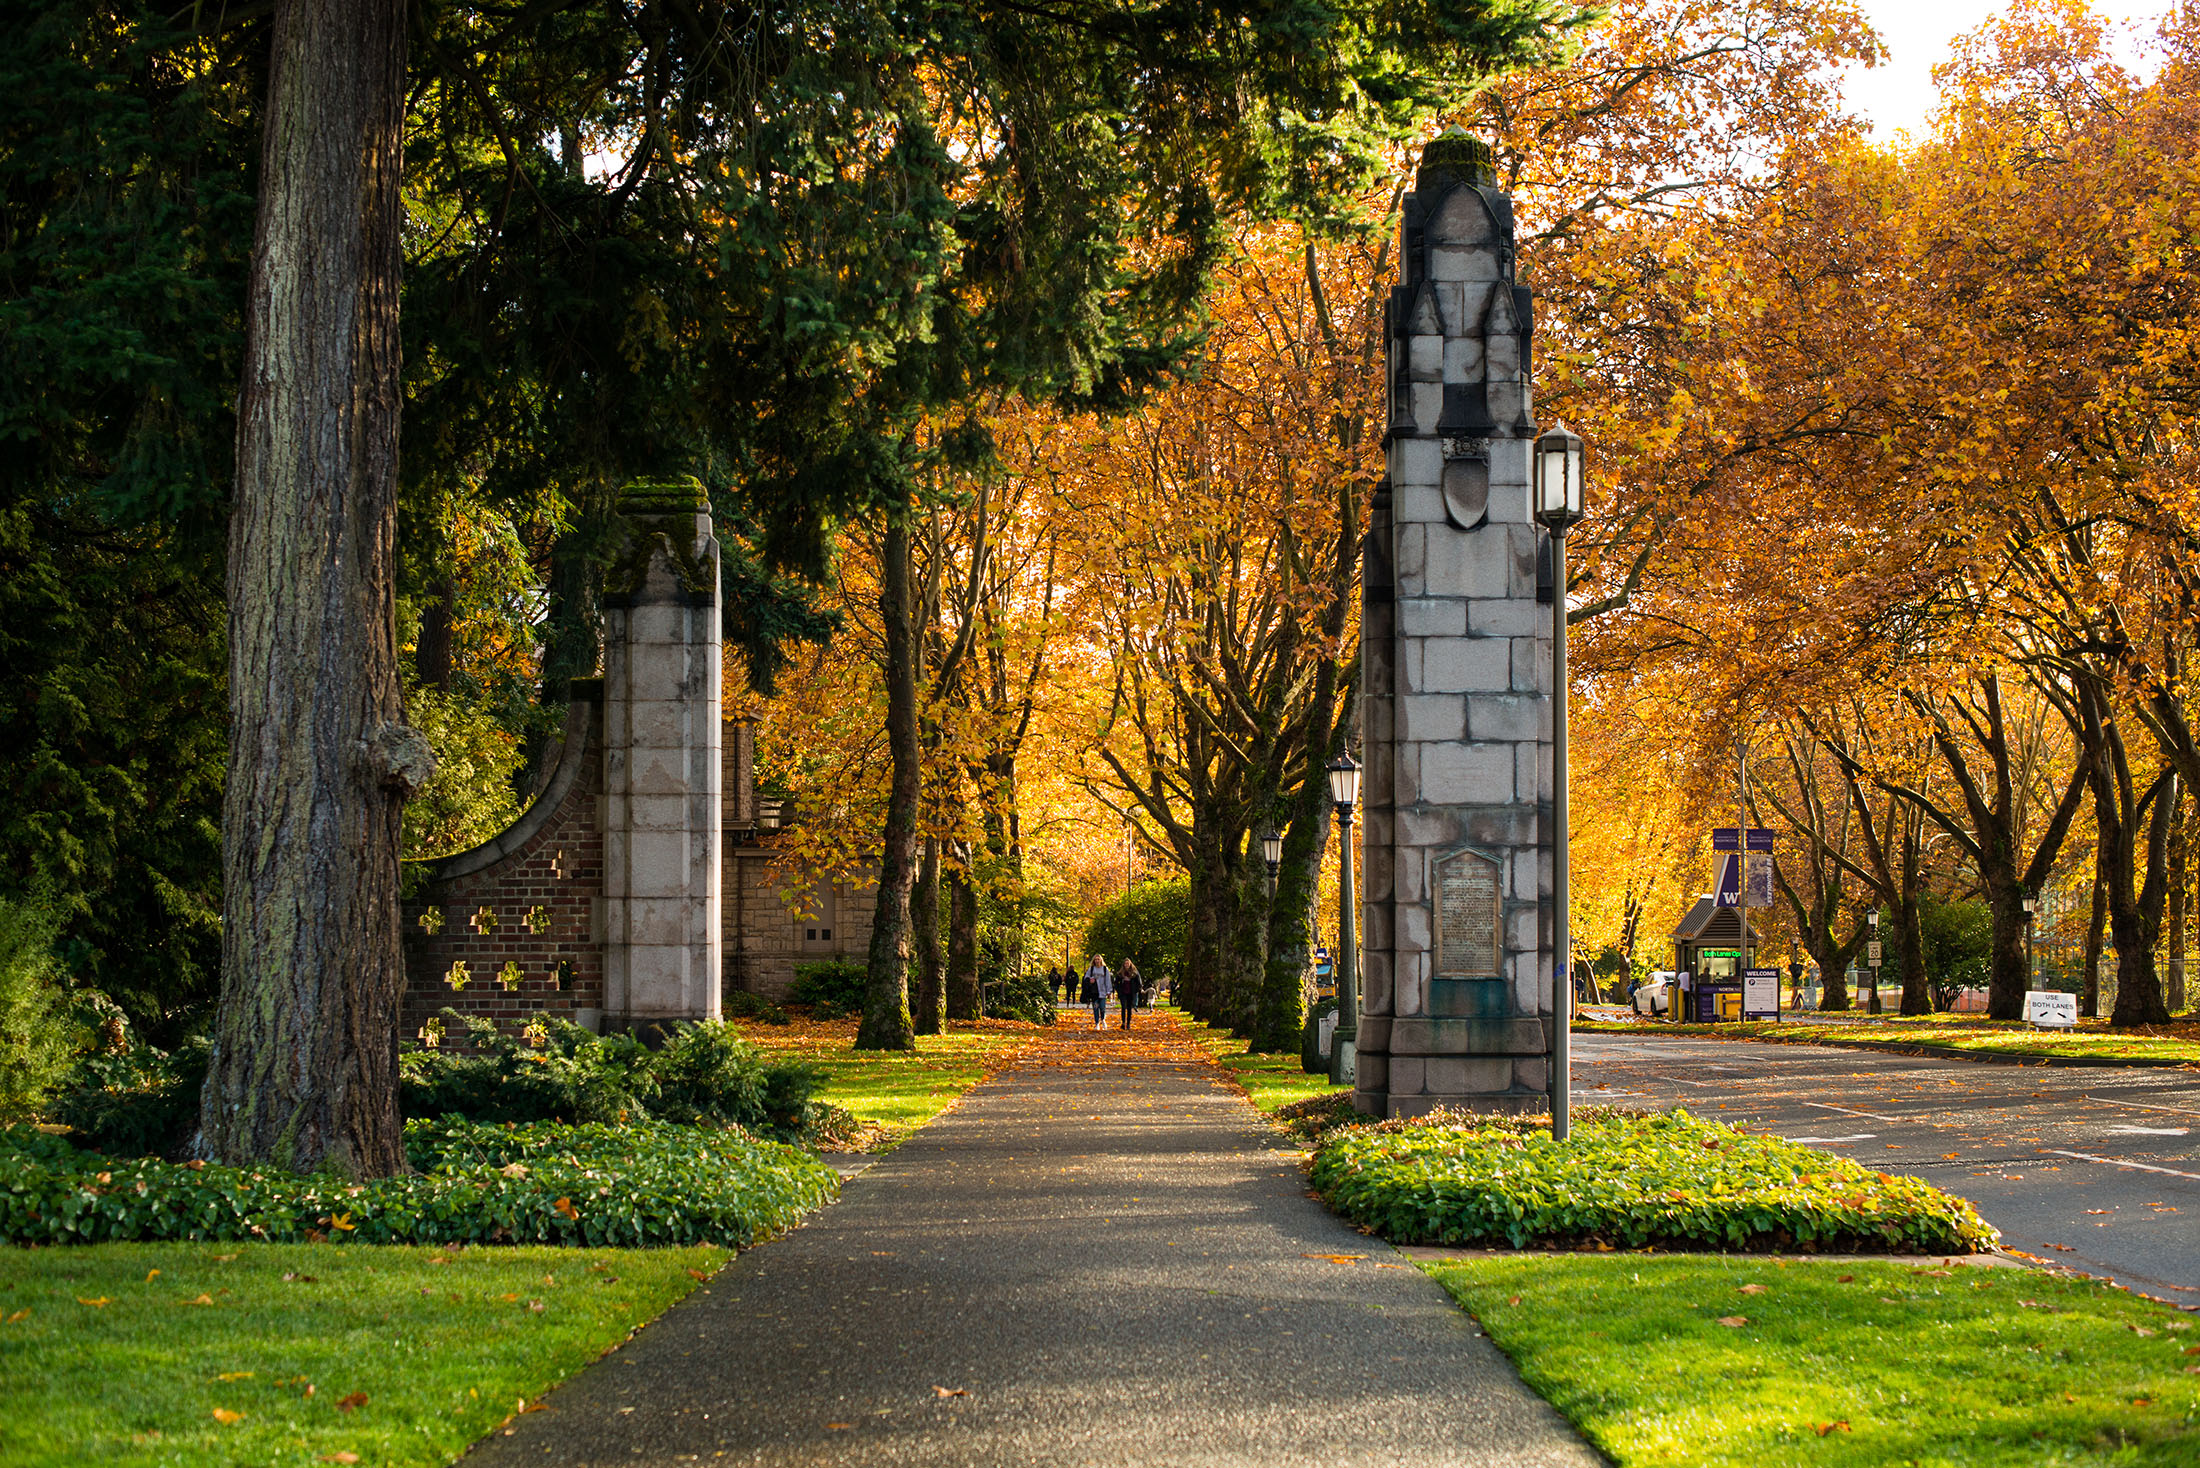 MEMORIAL WAY, Lined with 58 London plane trees commemorating those who died in WWI, Memorial Way is a majestic entrance to campus.